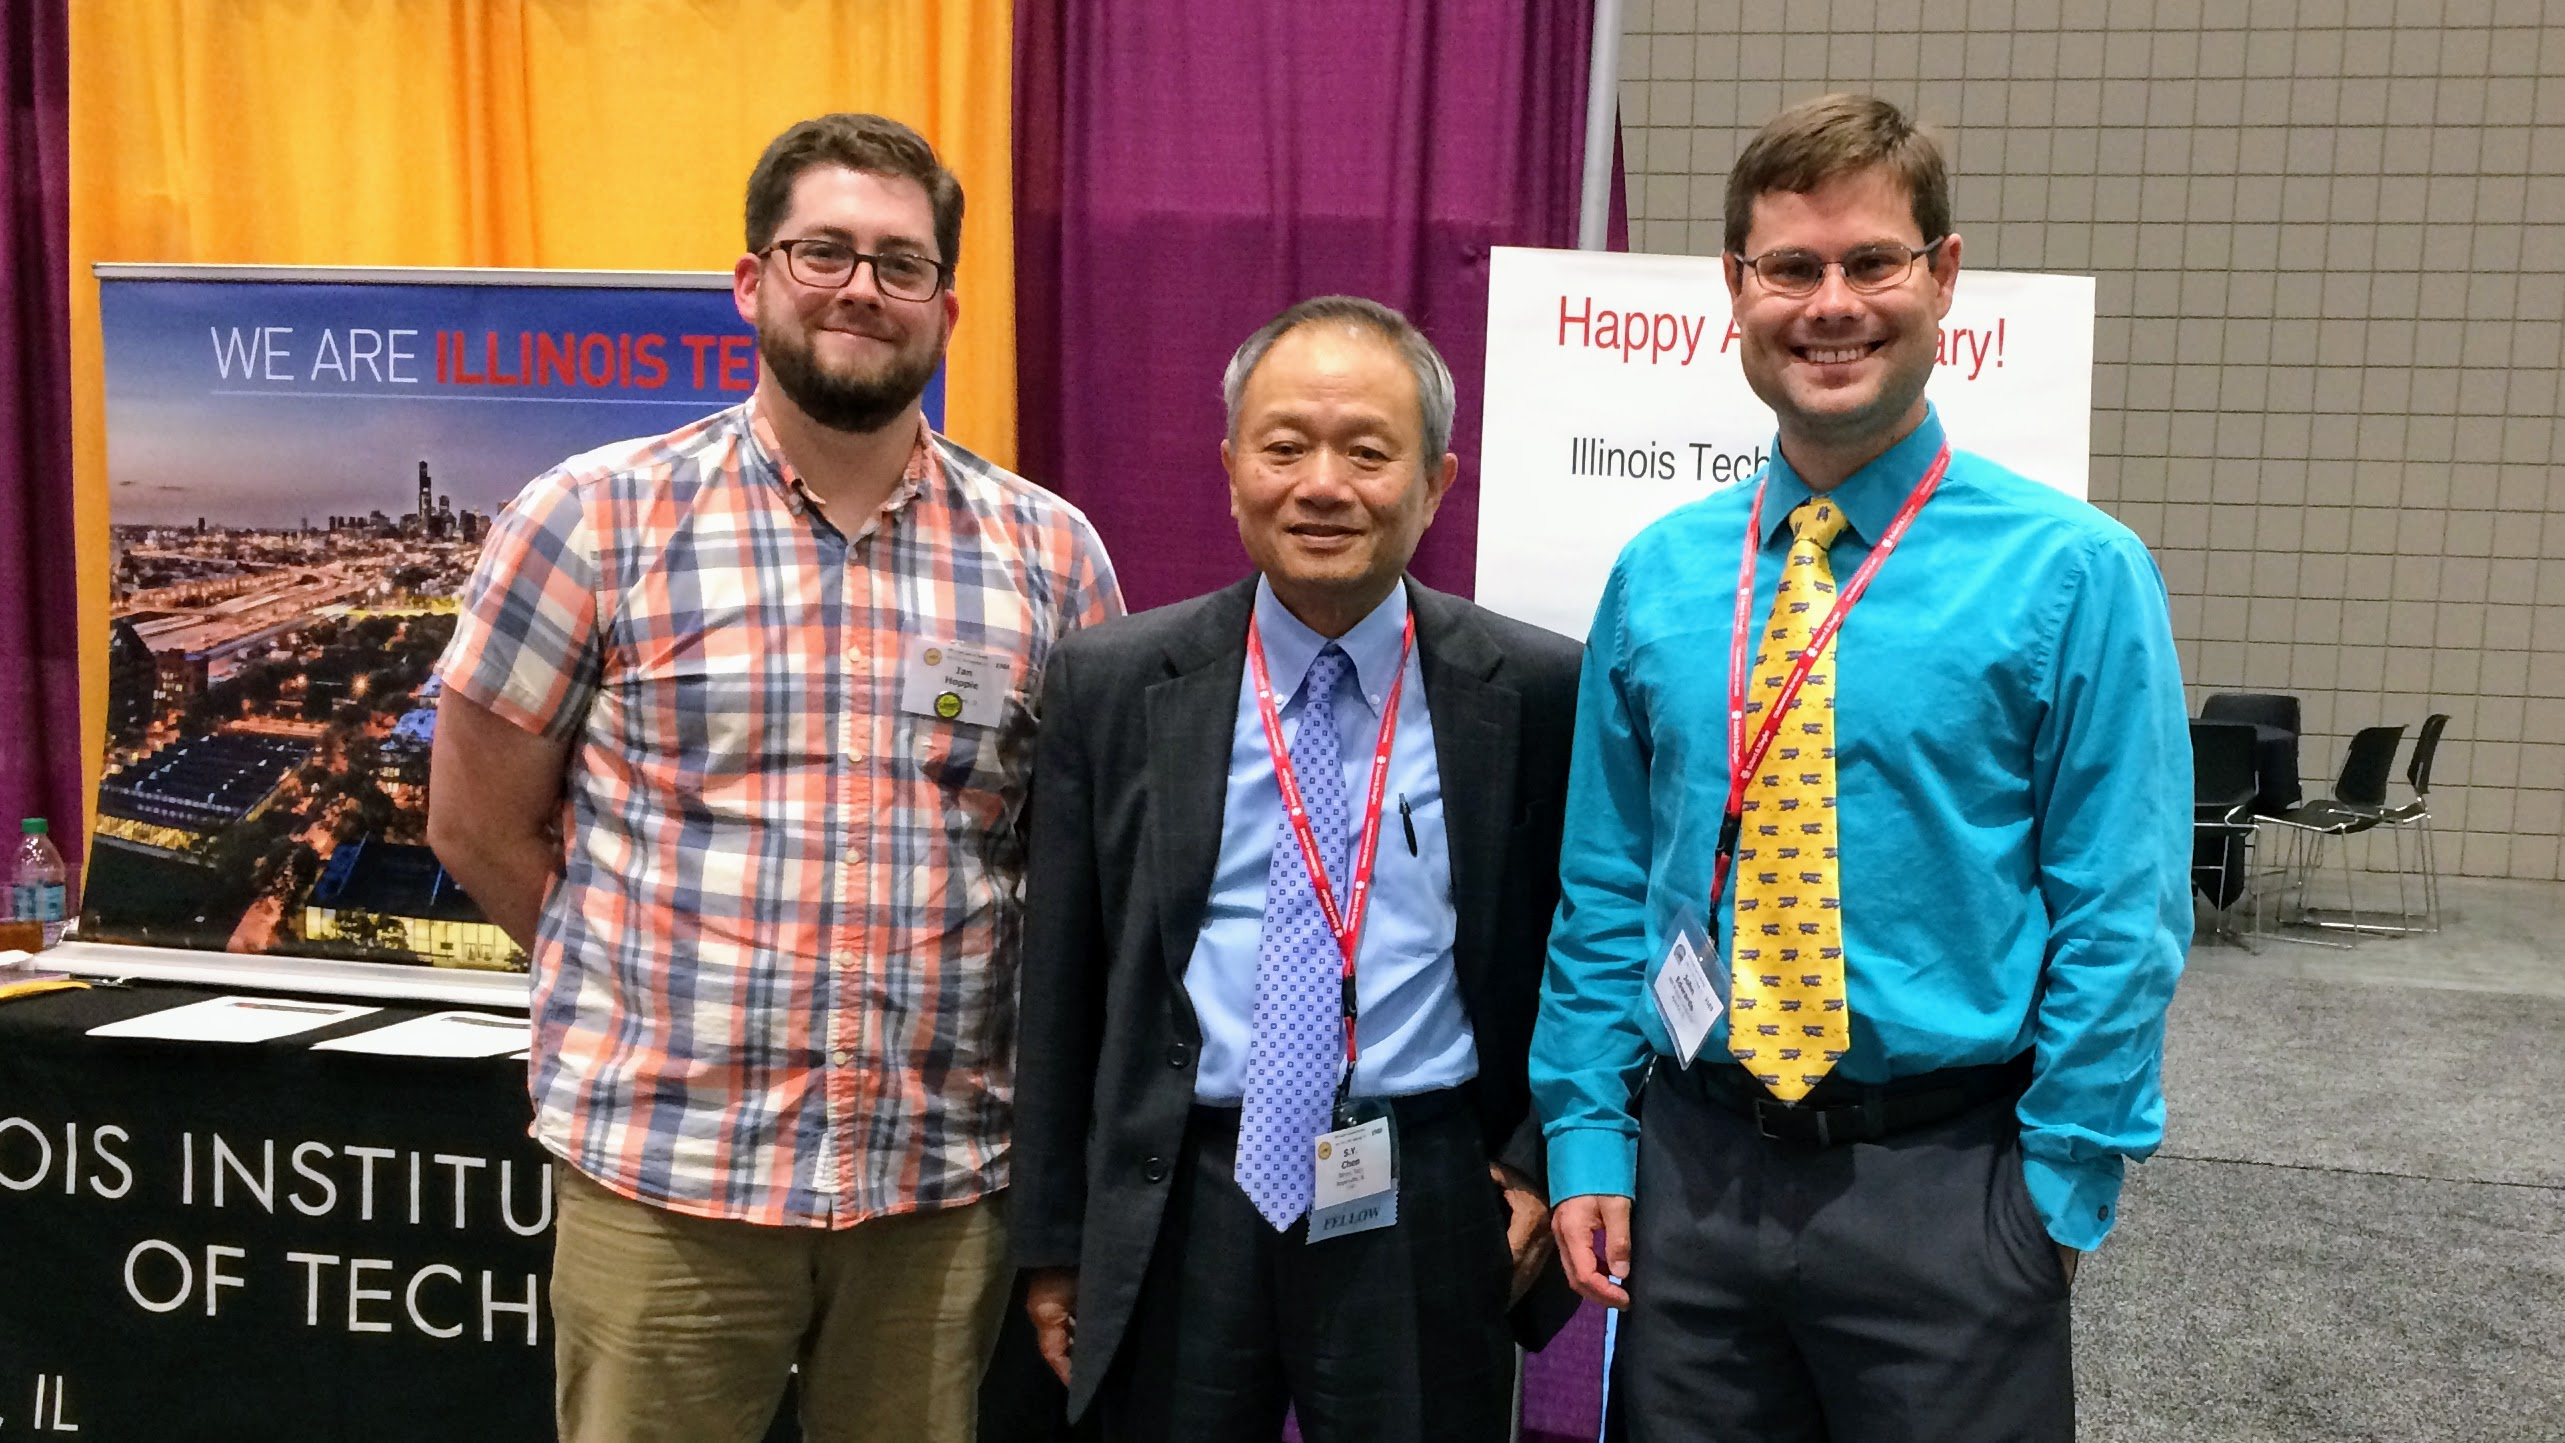 Ian Hoppie, S.Y. Chen, and John Edwards at the 2017 Health Physics Society Meeting in Raleigh, NC.